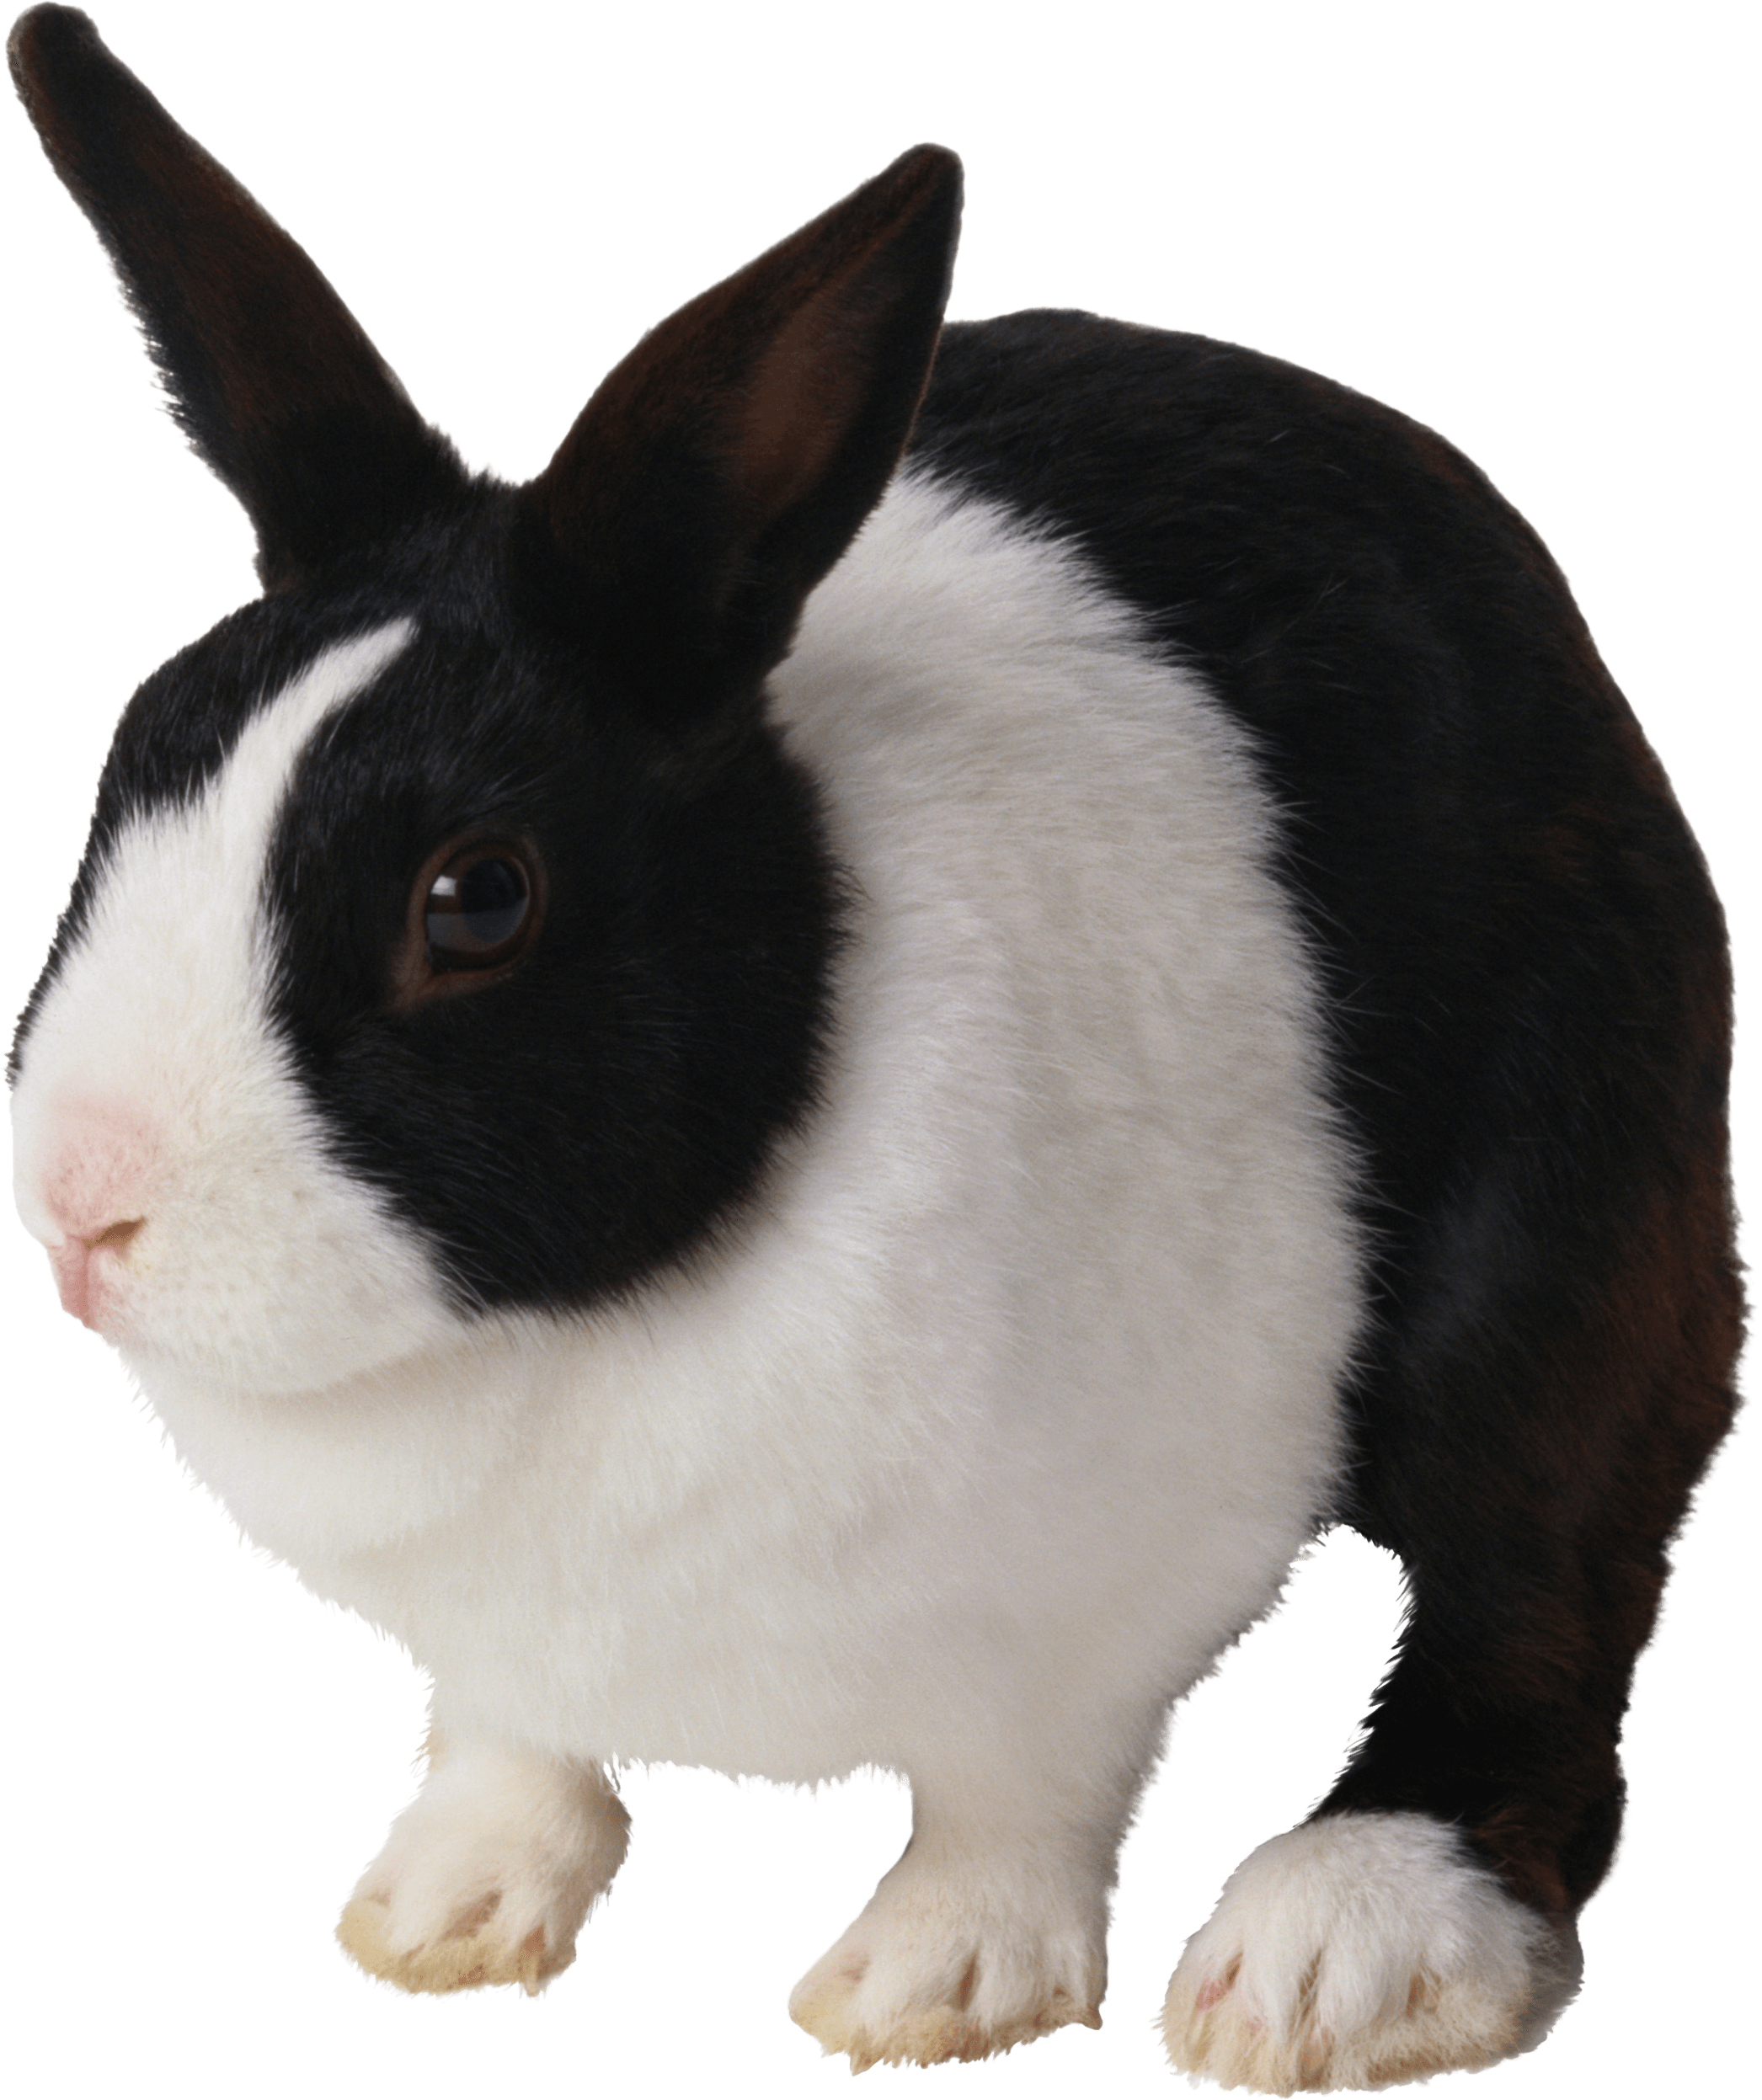 Black And White Rabbit Png Image